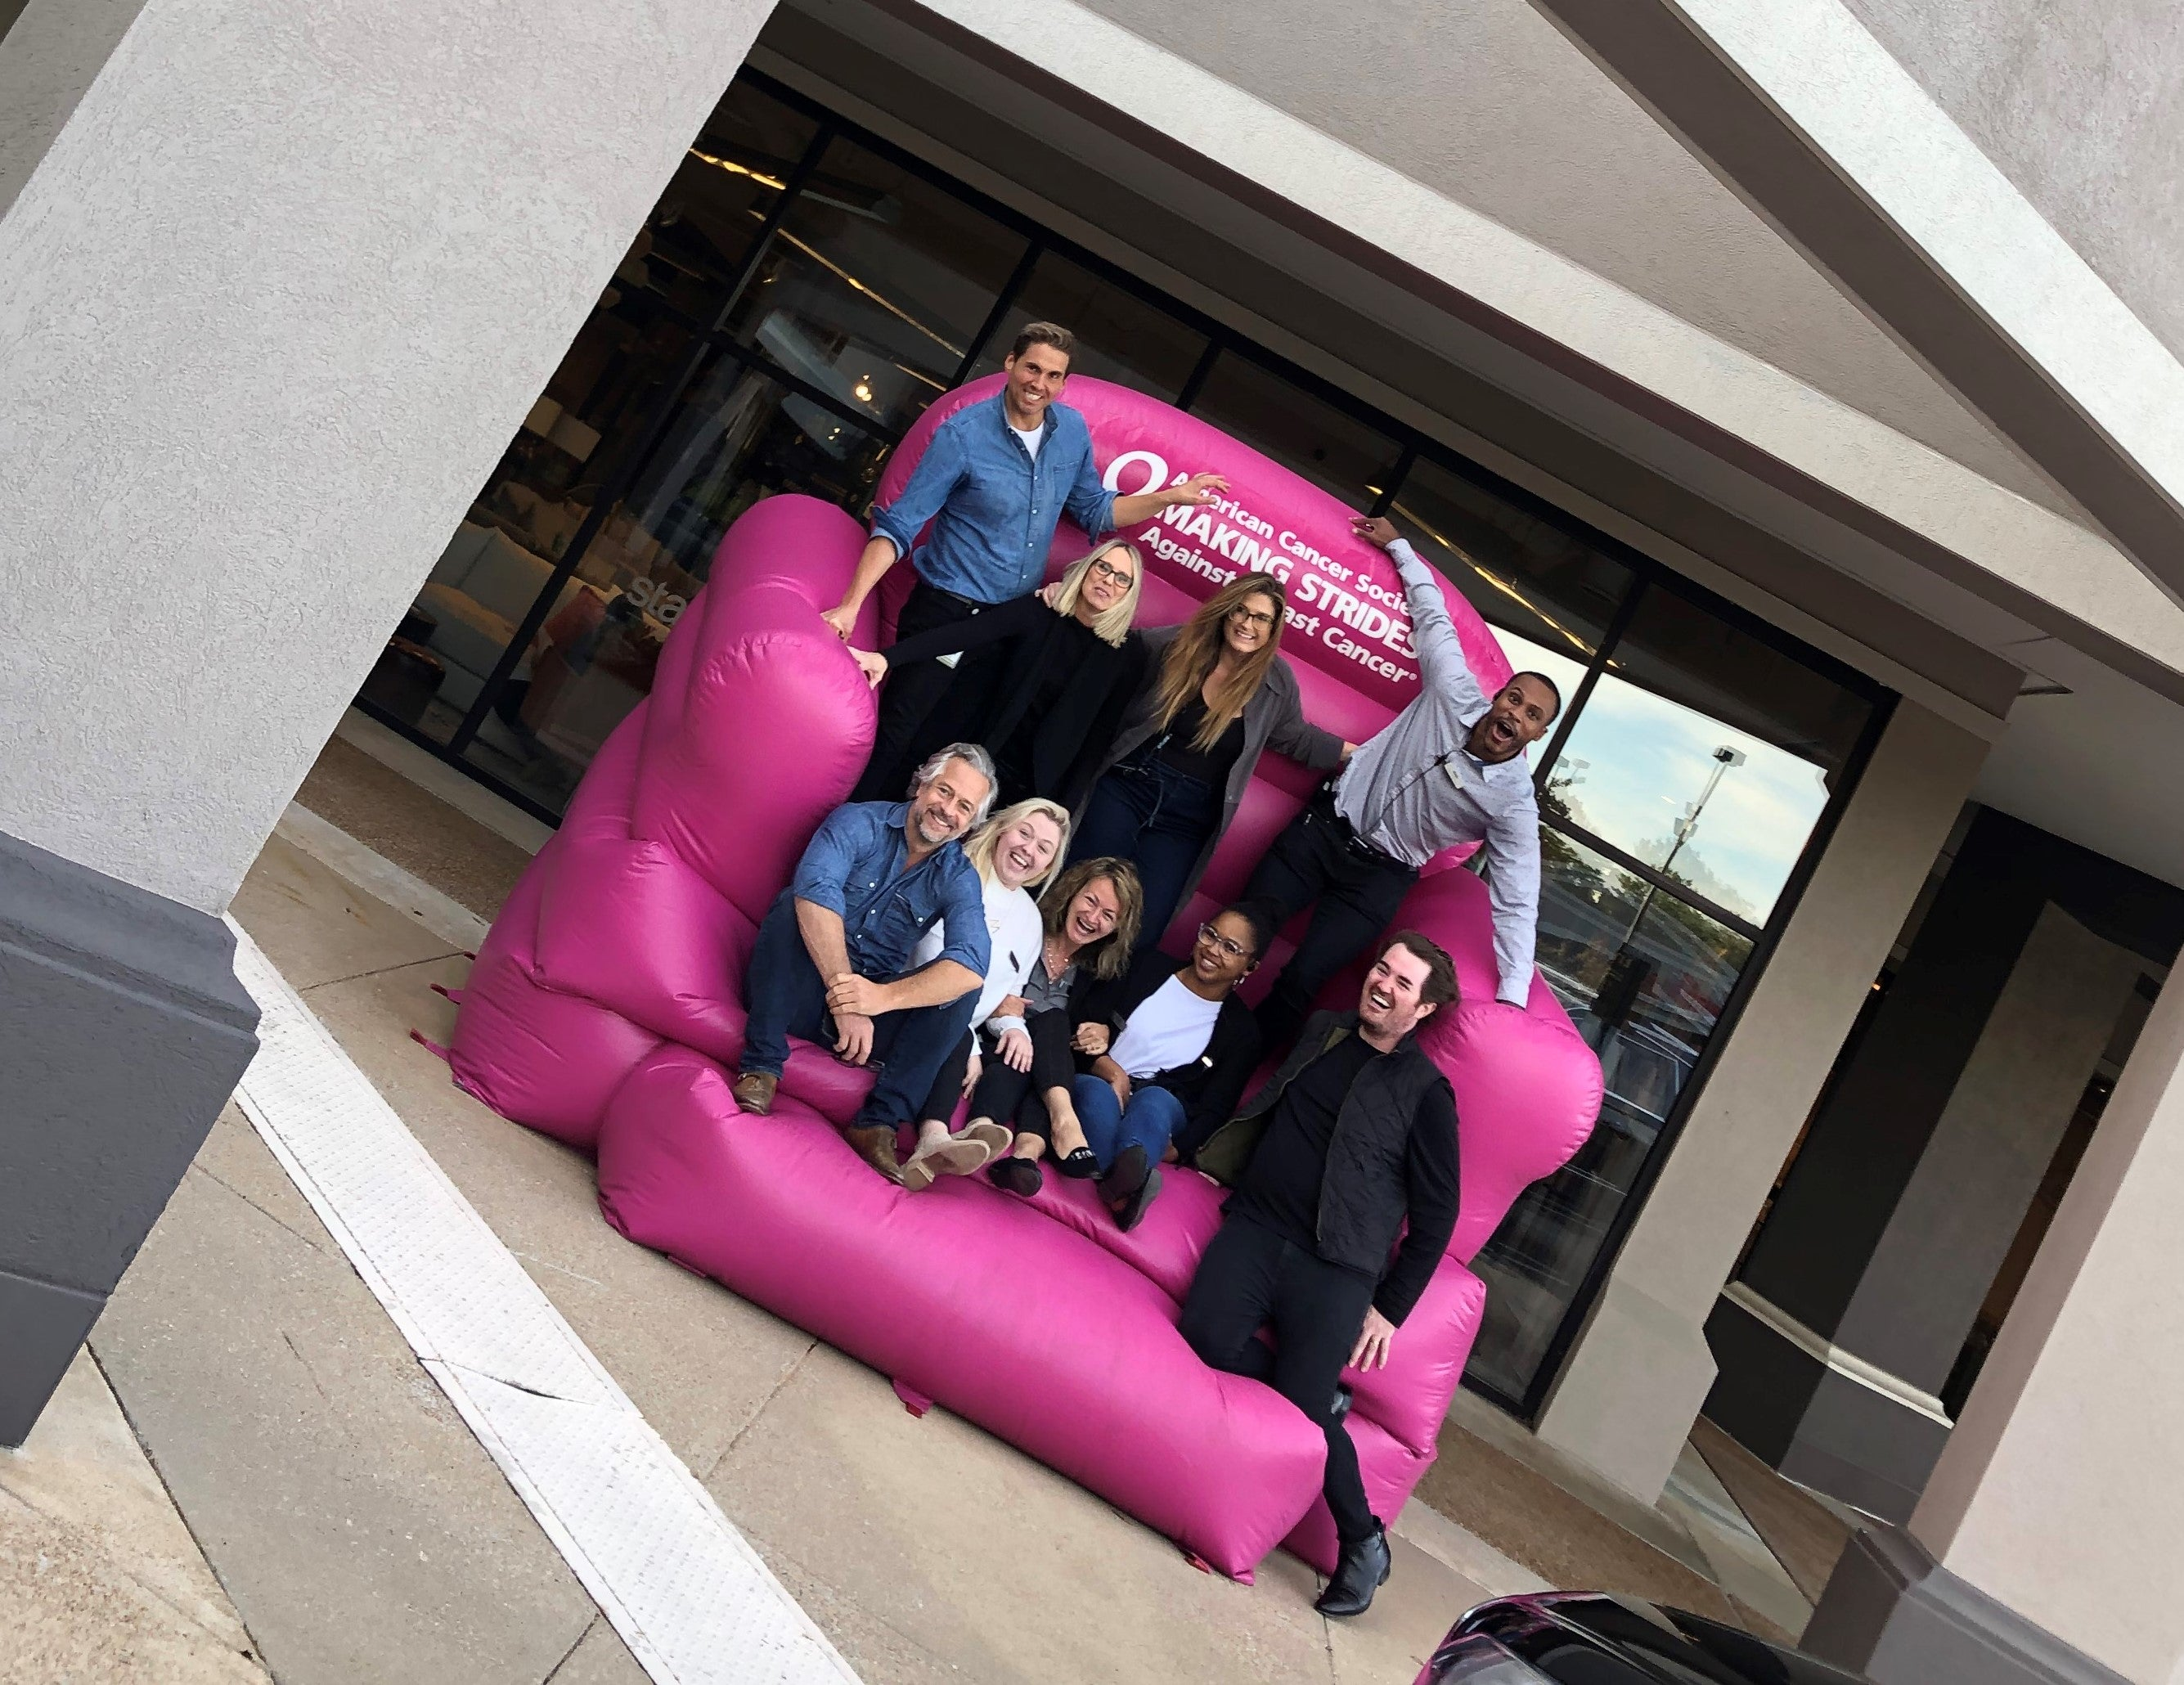 Employees at Stash Home Memphis in Big Pink Chair Making Strides Against Breast Cancer